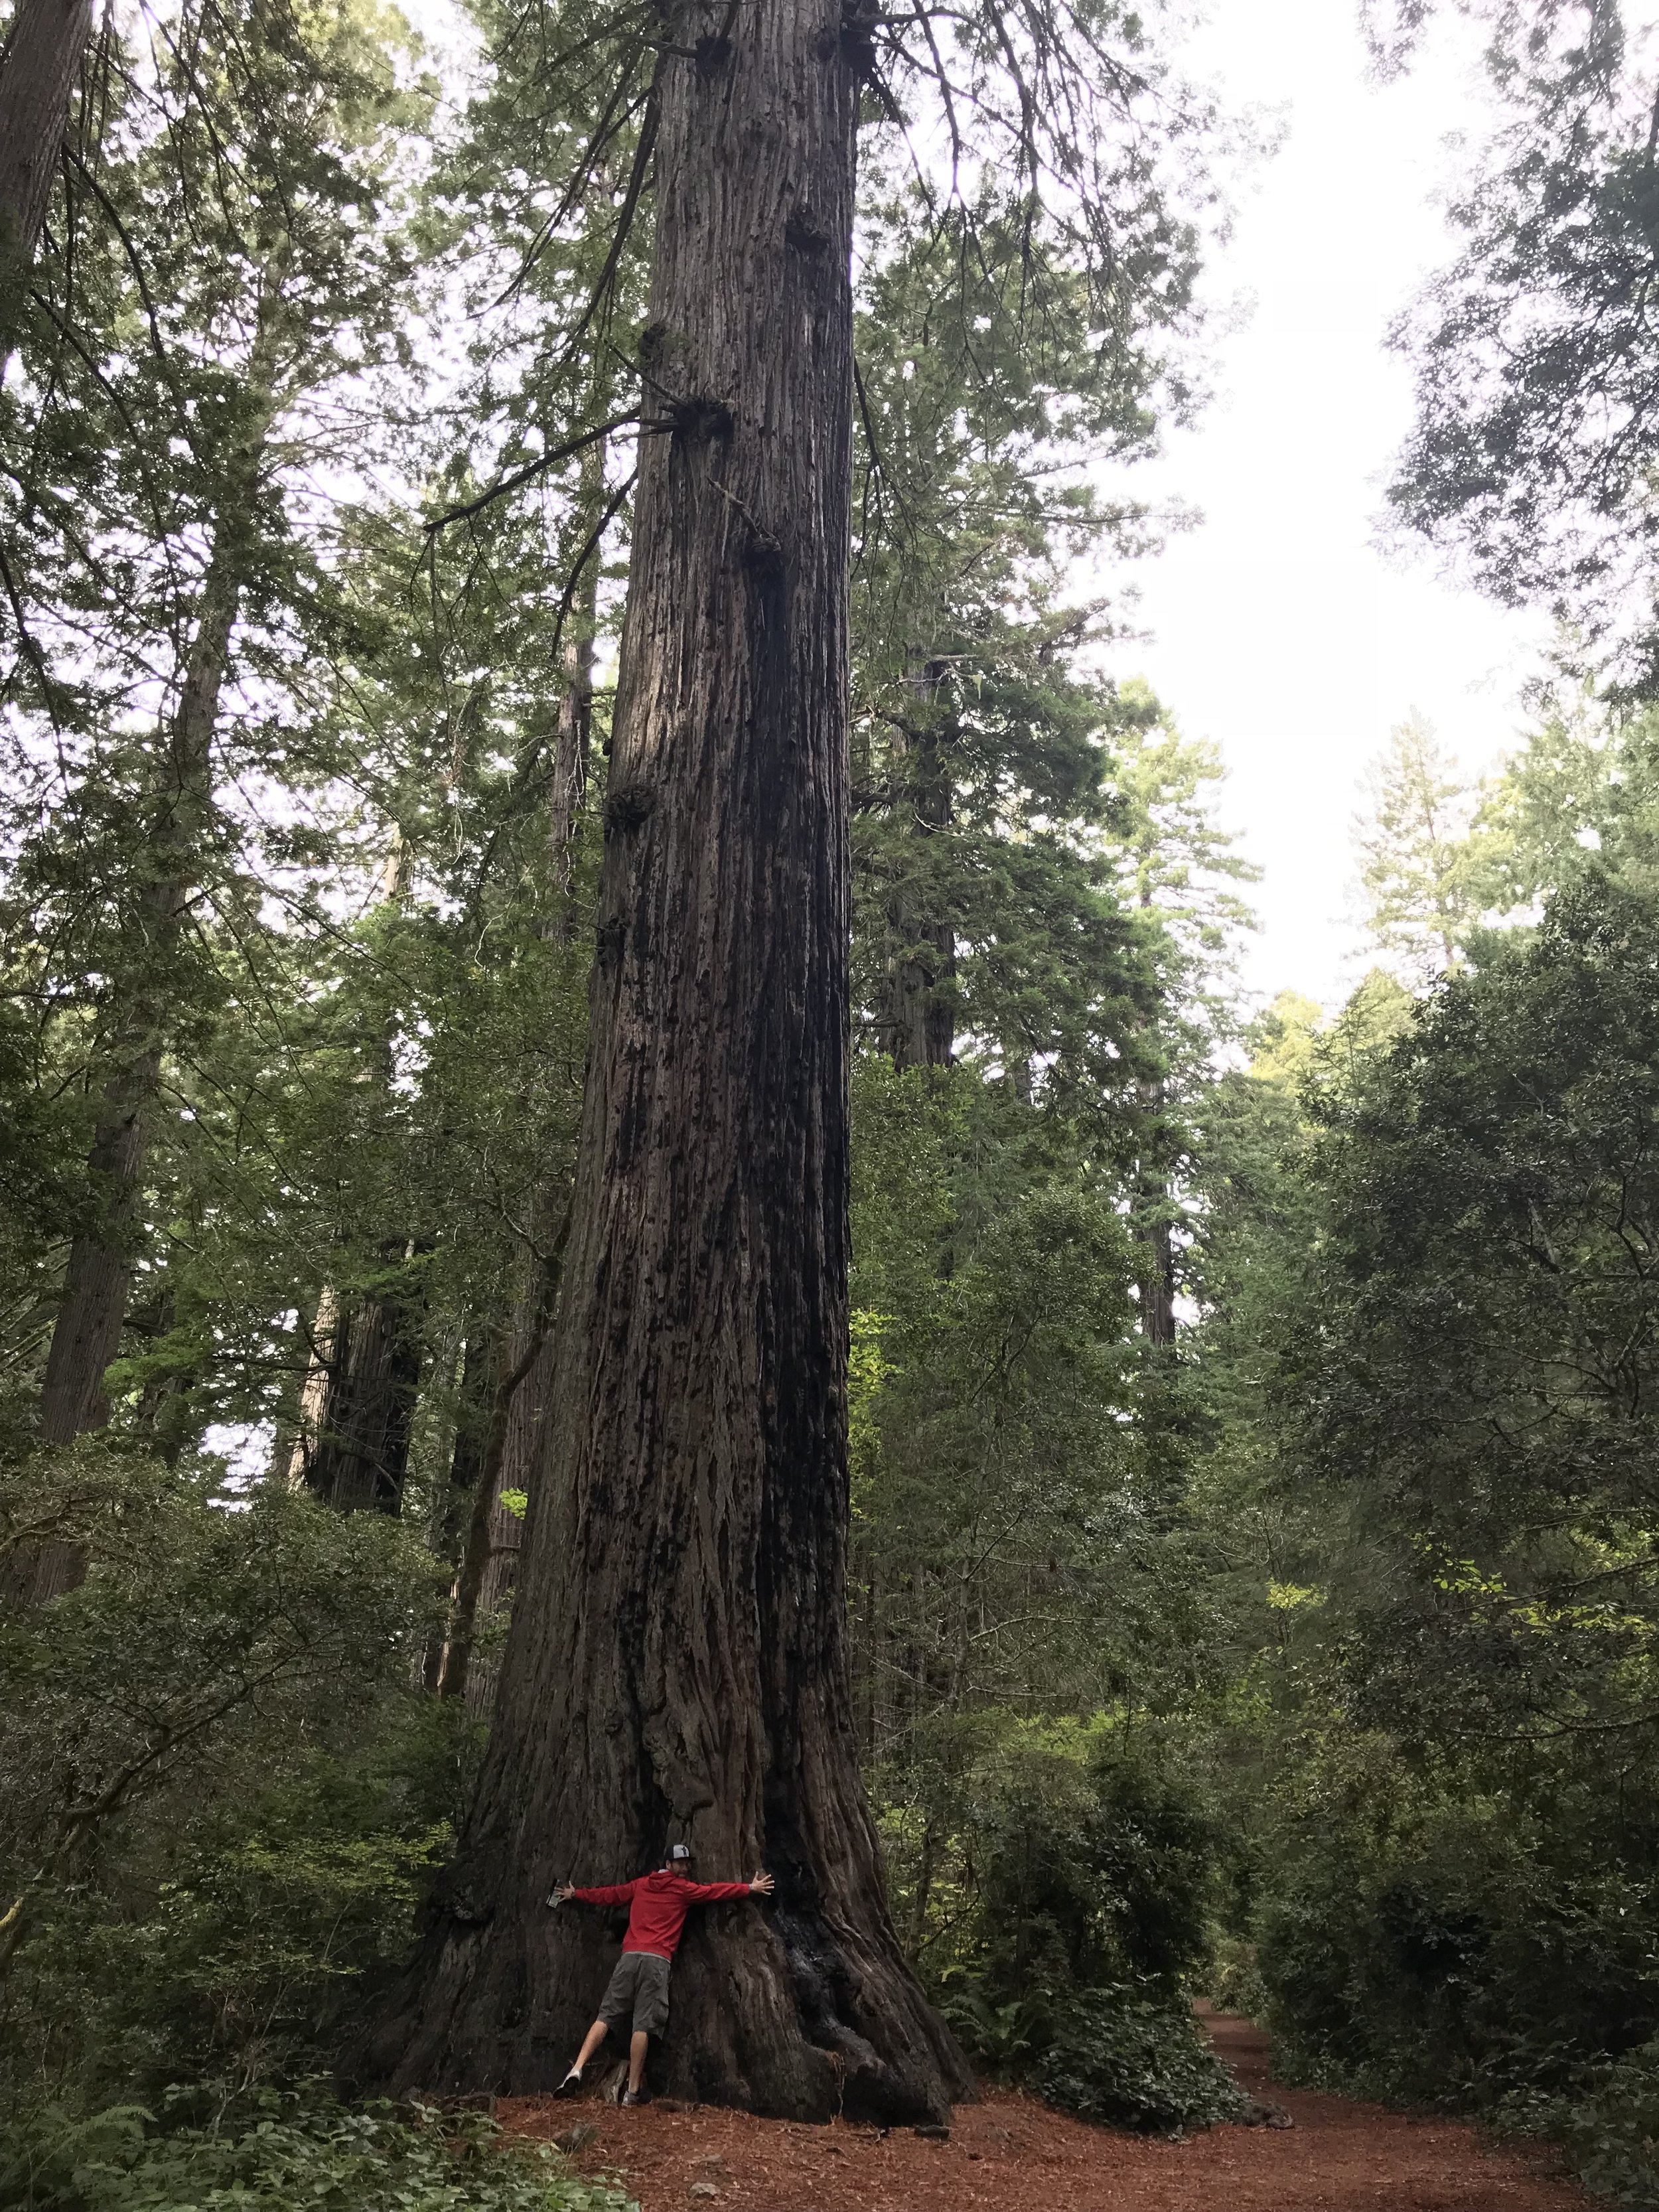 Hike Four:  Lady Bird Johnson Grove  in Redwood NP. Give a tree a BIG HUG when you are there!